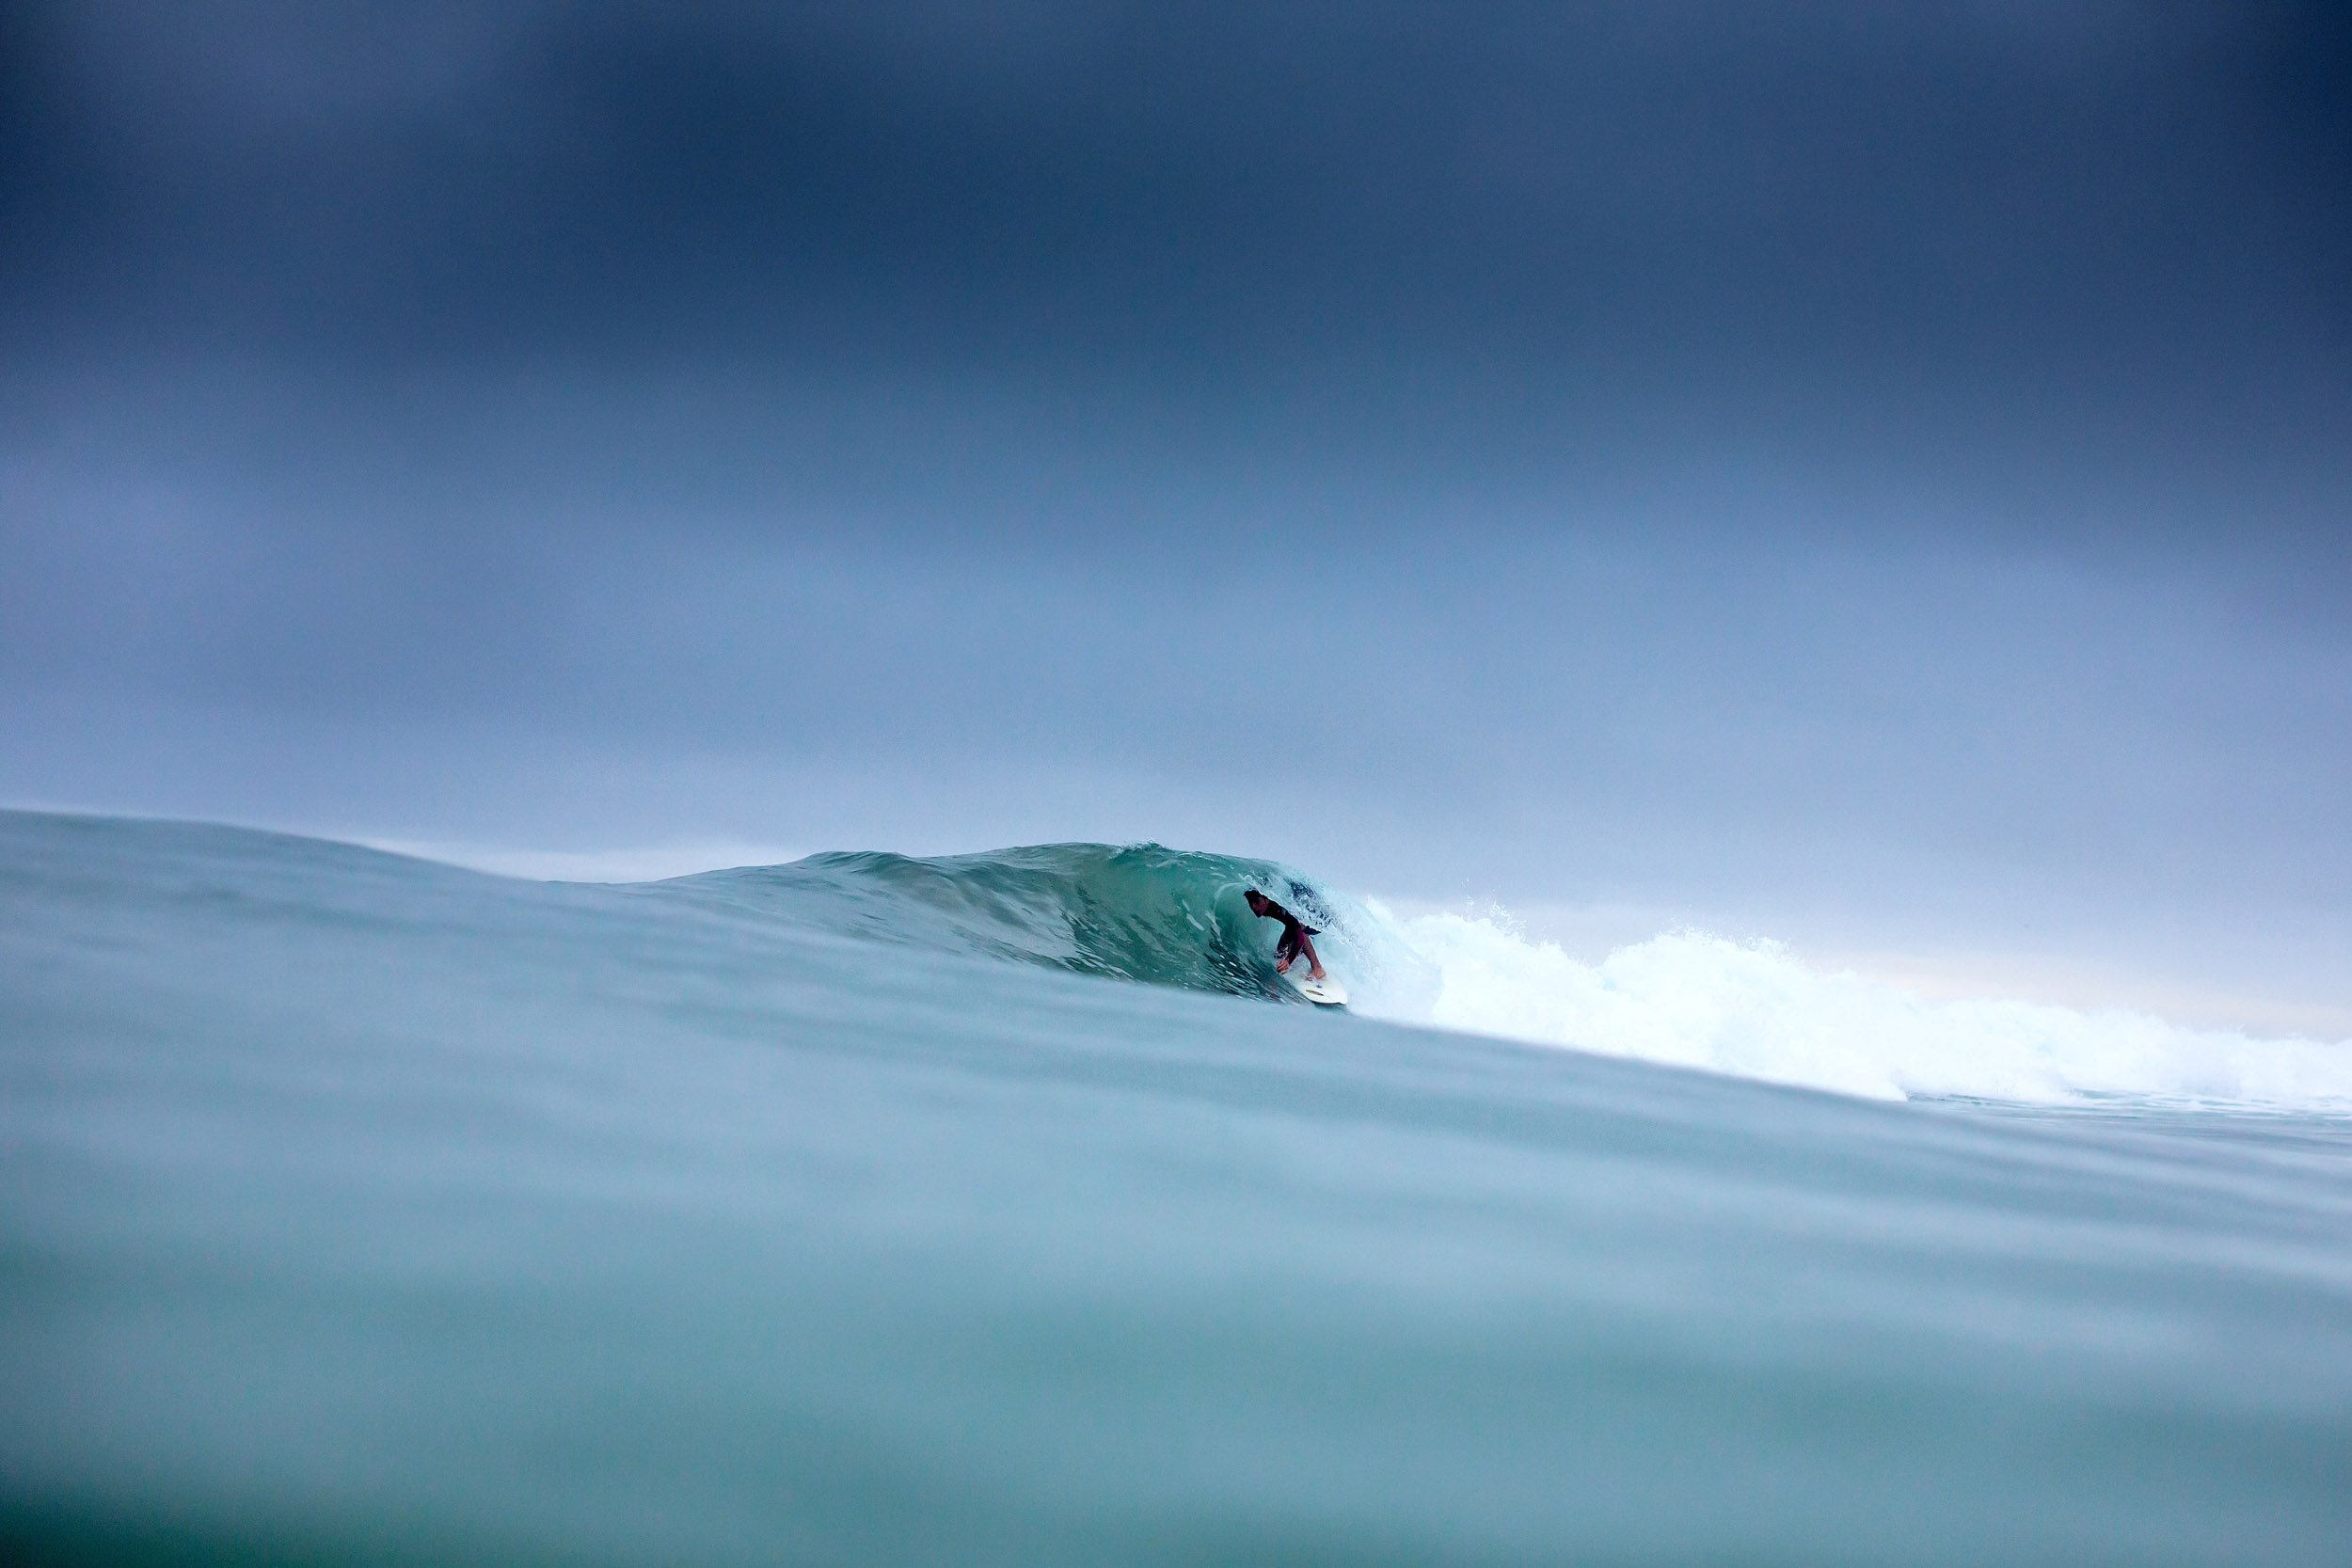 rainy-day-surfing-water-photography-S1490-165.jpg